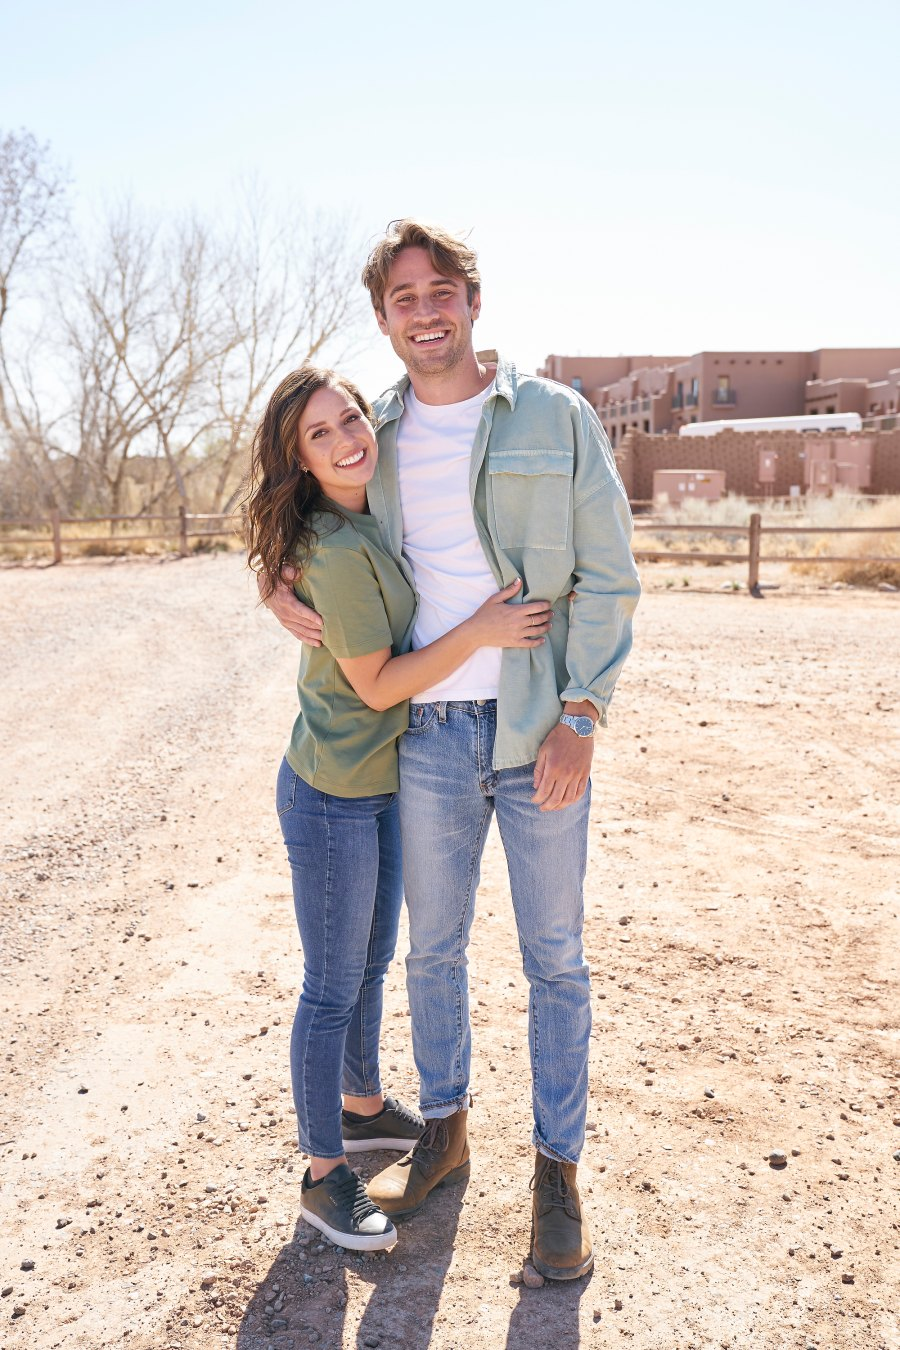 Katie Thurston and Greg Grippo's Messy 'Bachelorette' Split: Everything We Know